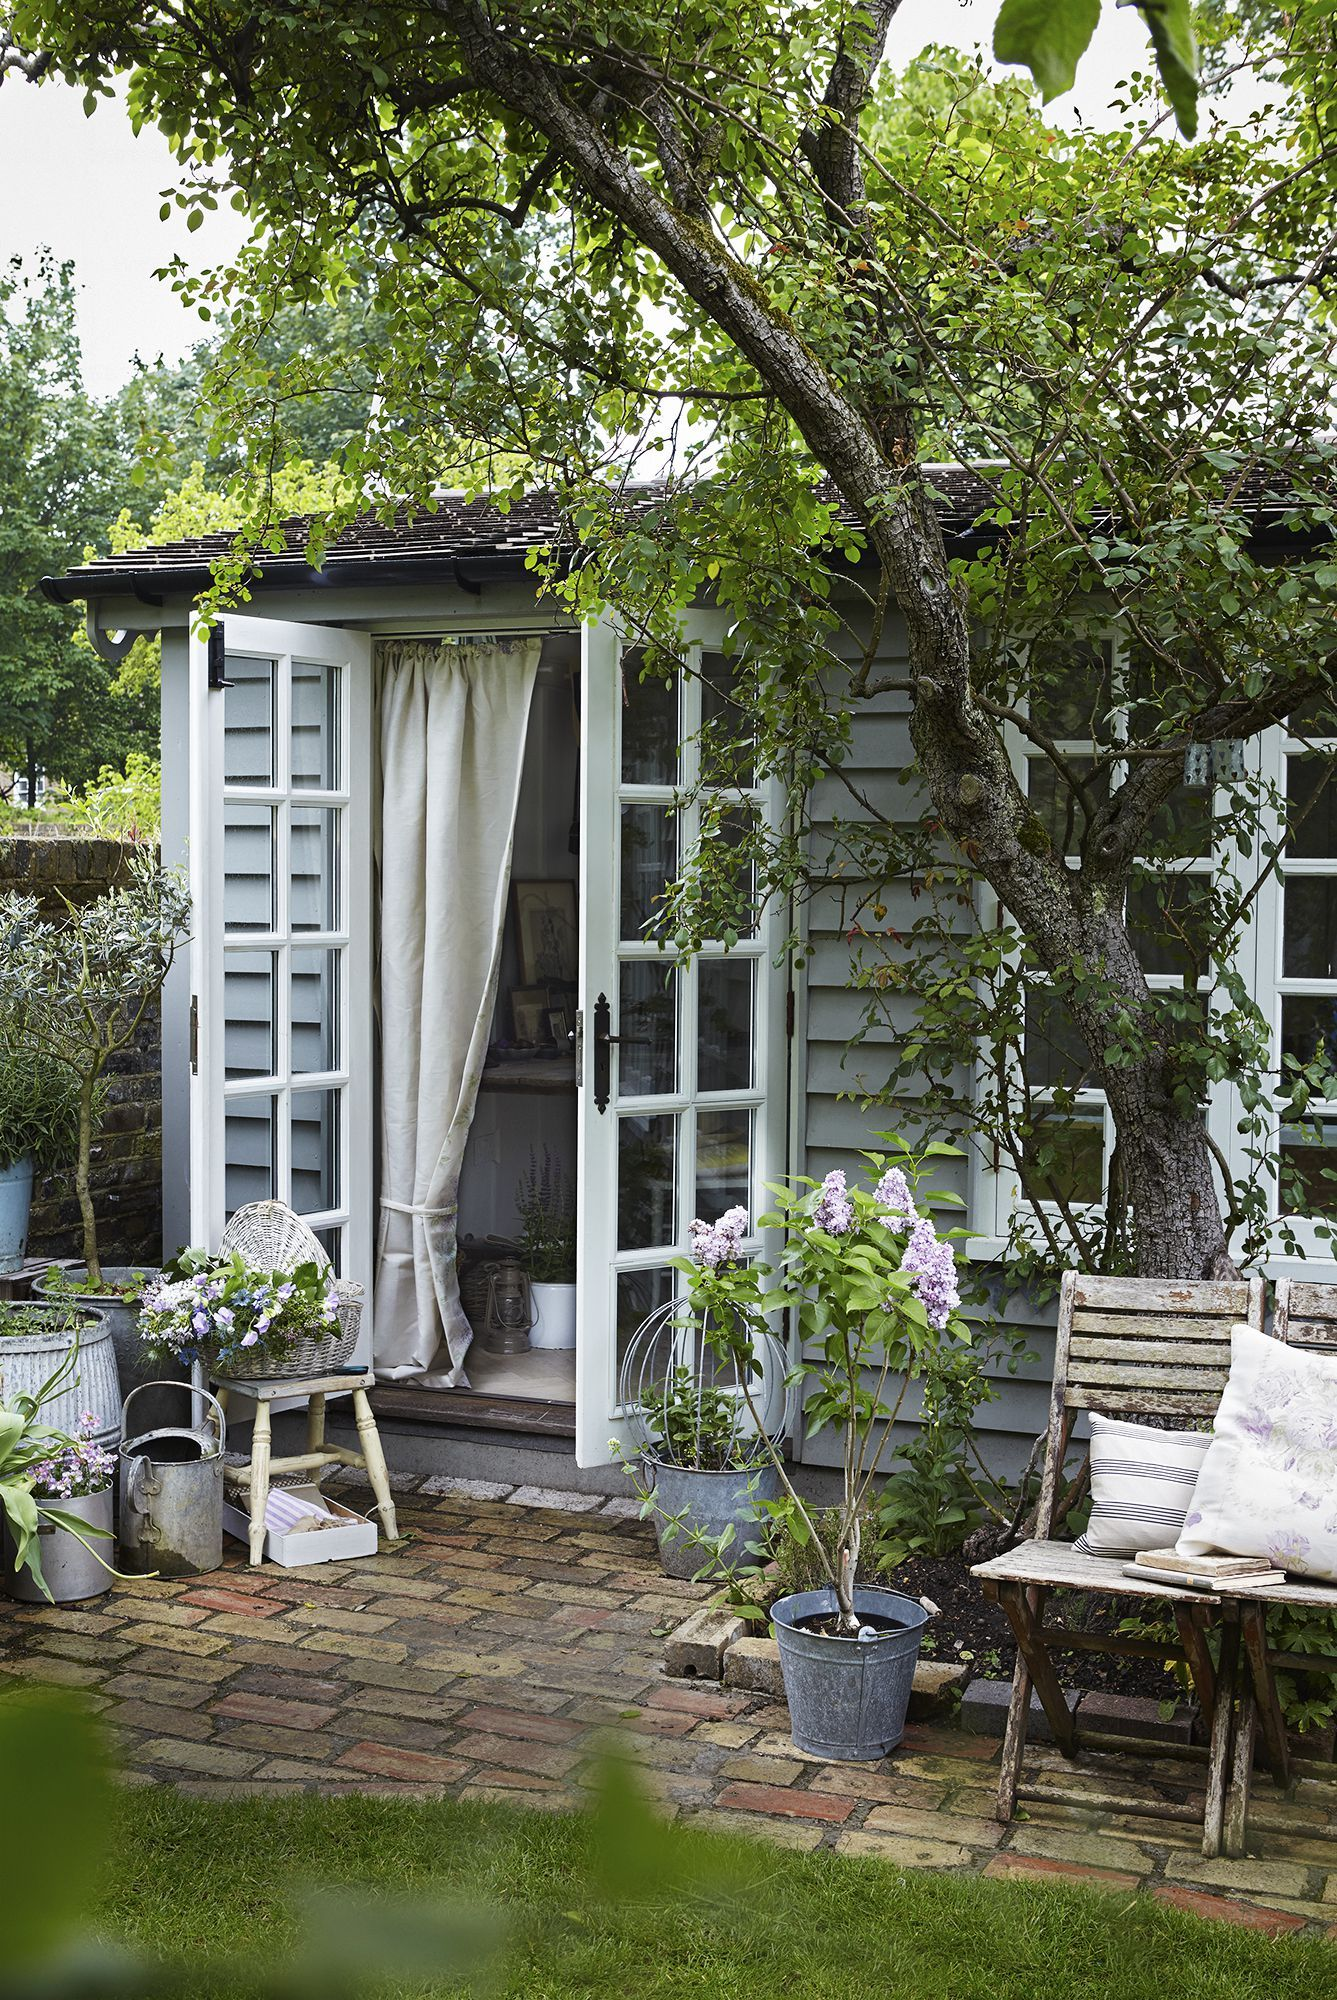 17 conservatories and garden rooms to inspire you to bring the ...